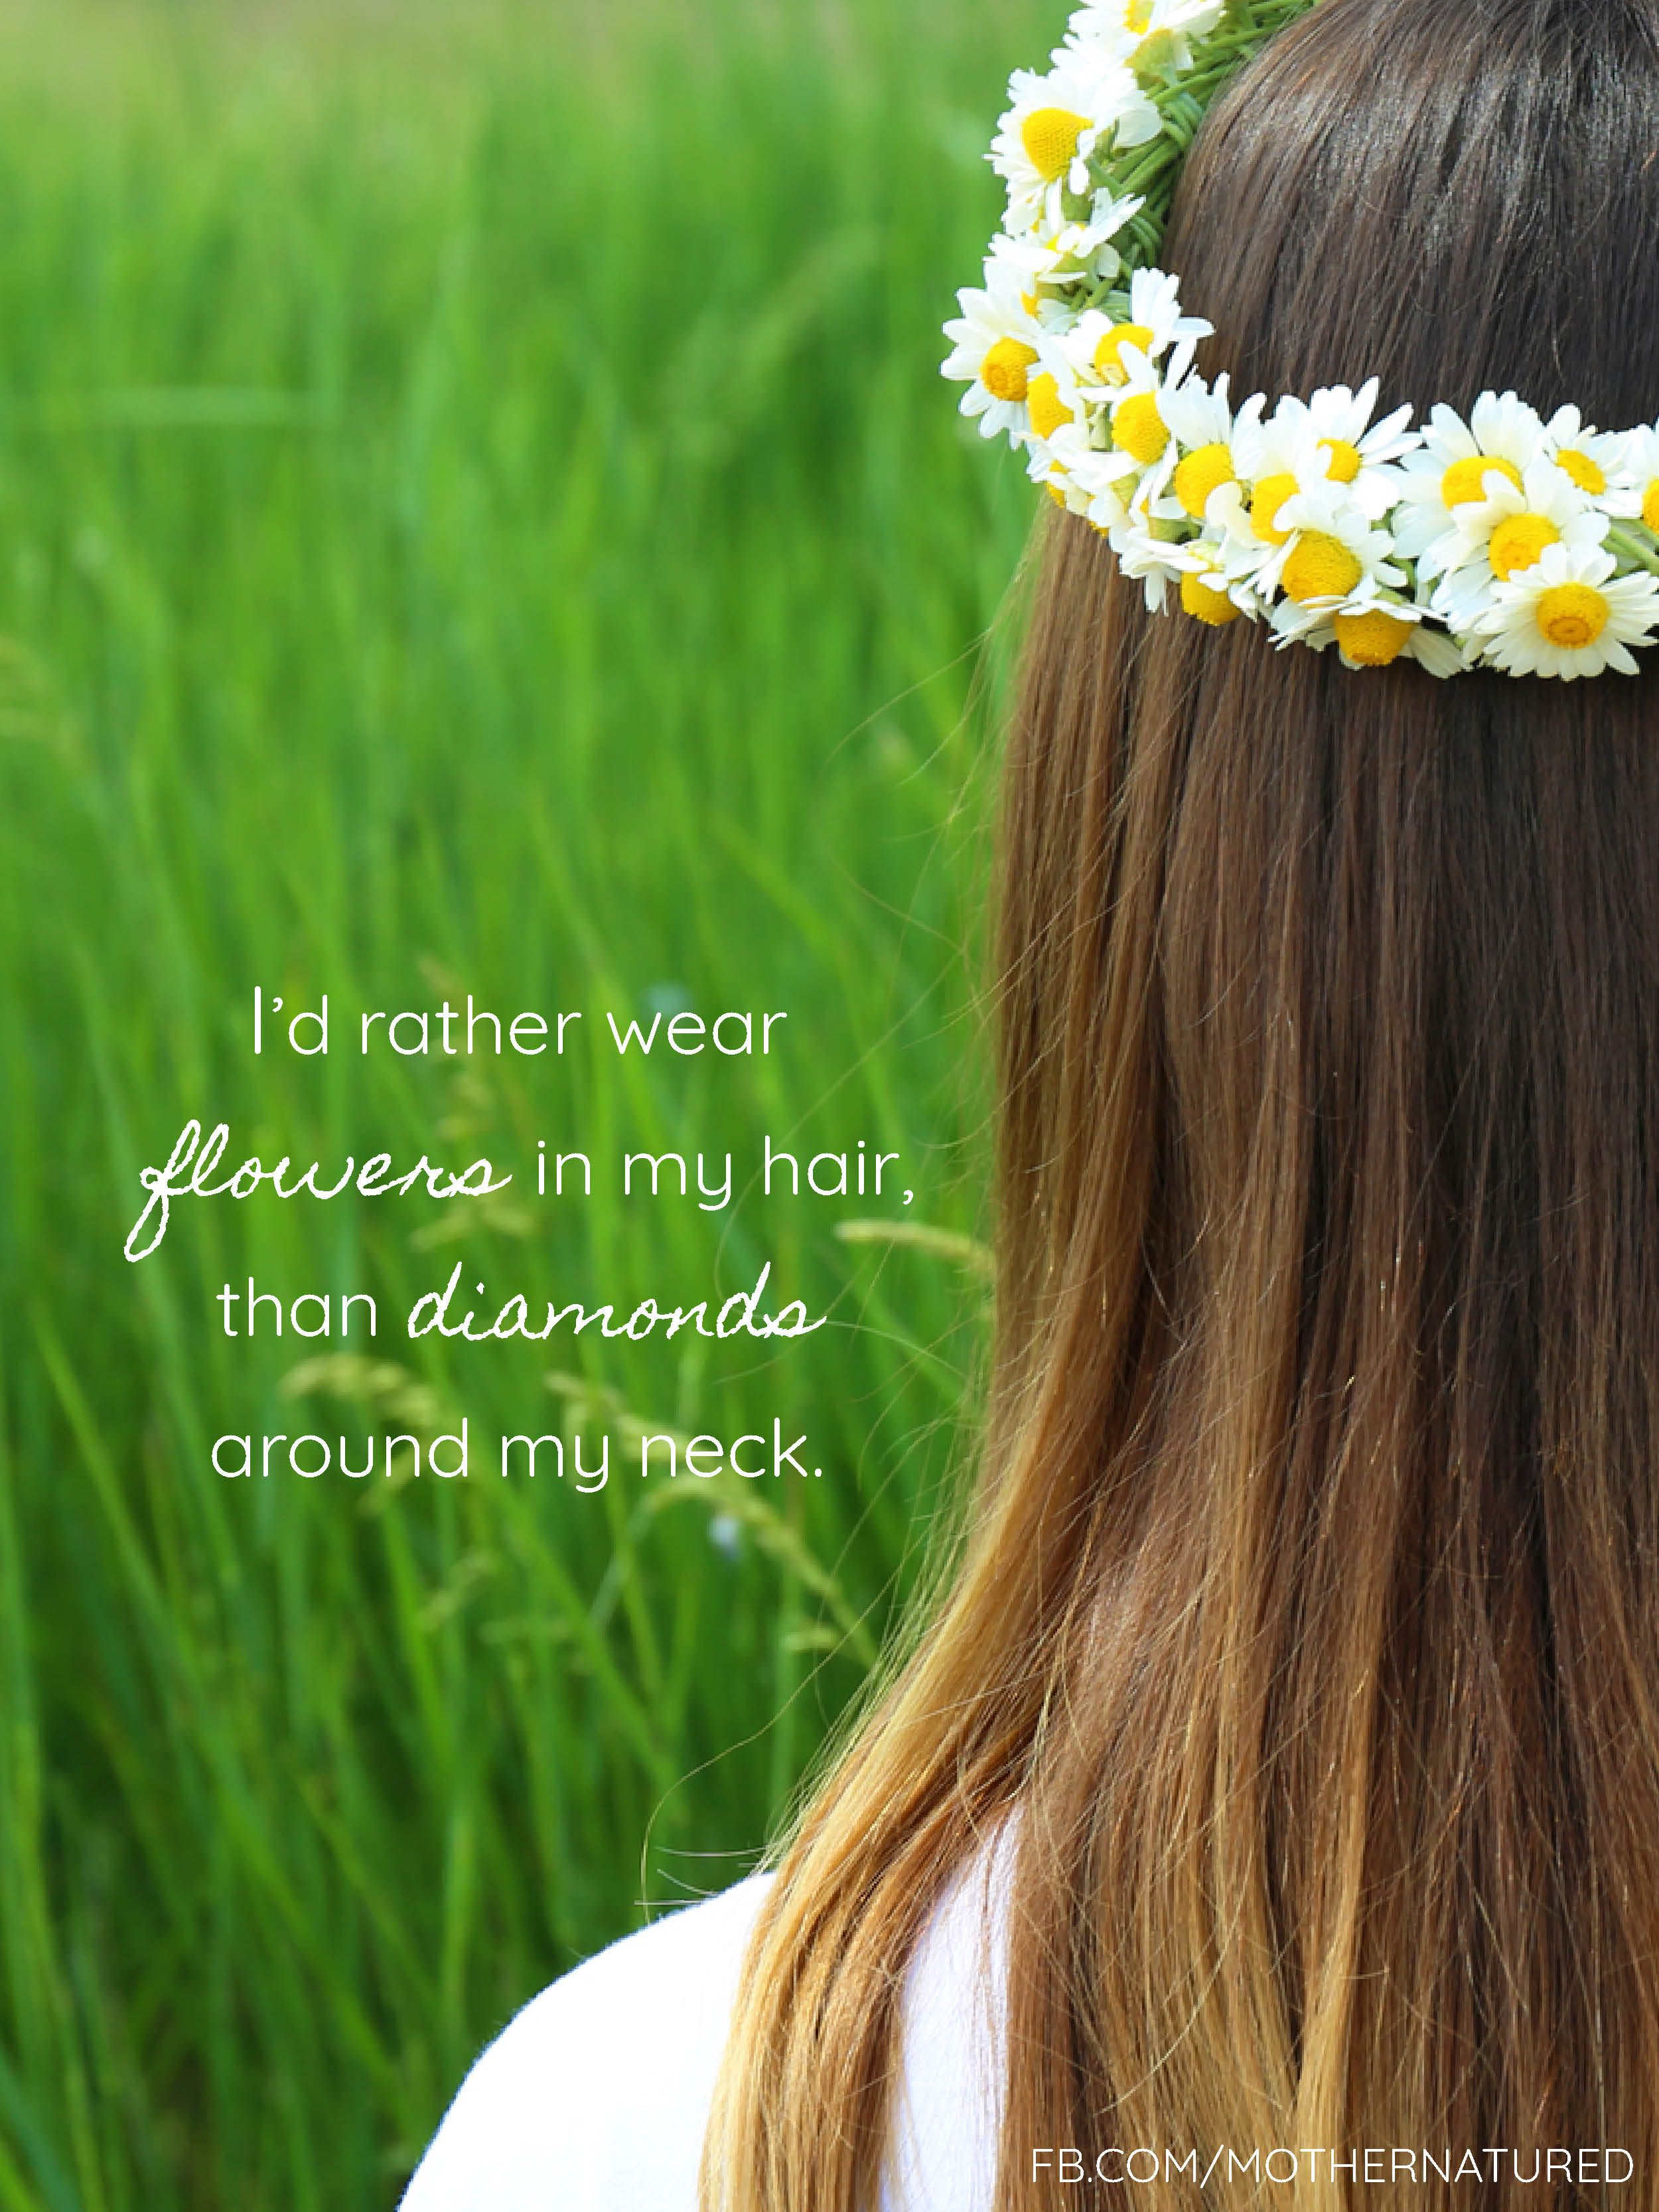 Id rather wear flowers in my hair, than diamonds around